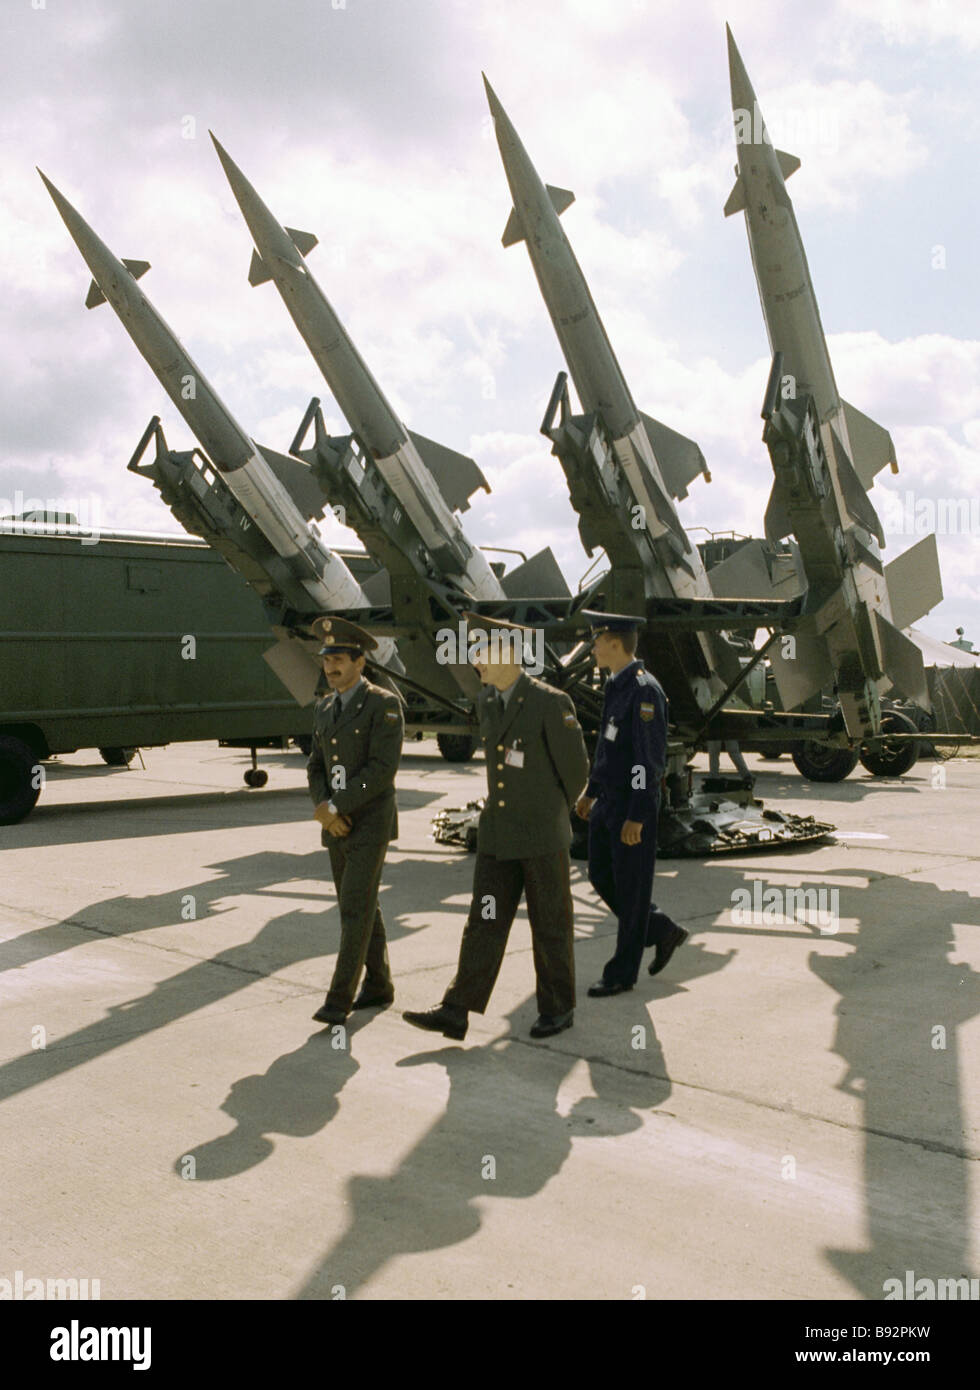 Les missiles surface-air SAM launcher Photo Stock